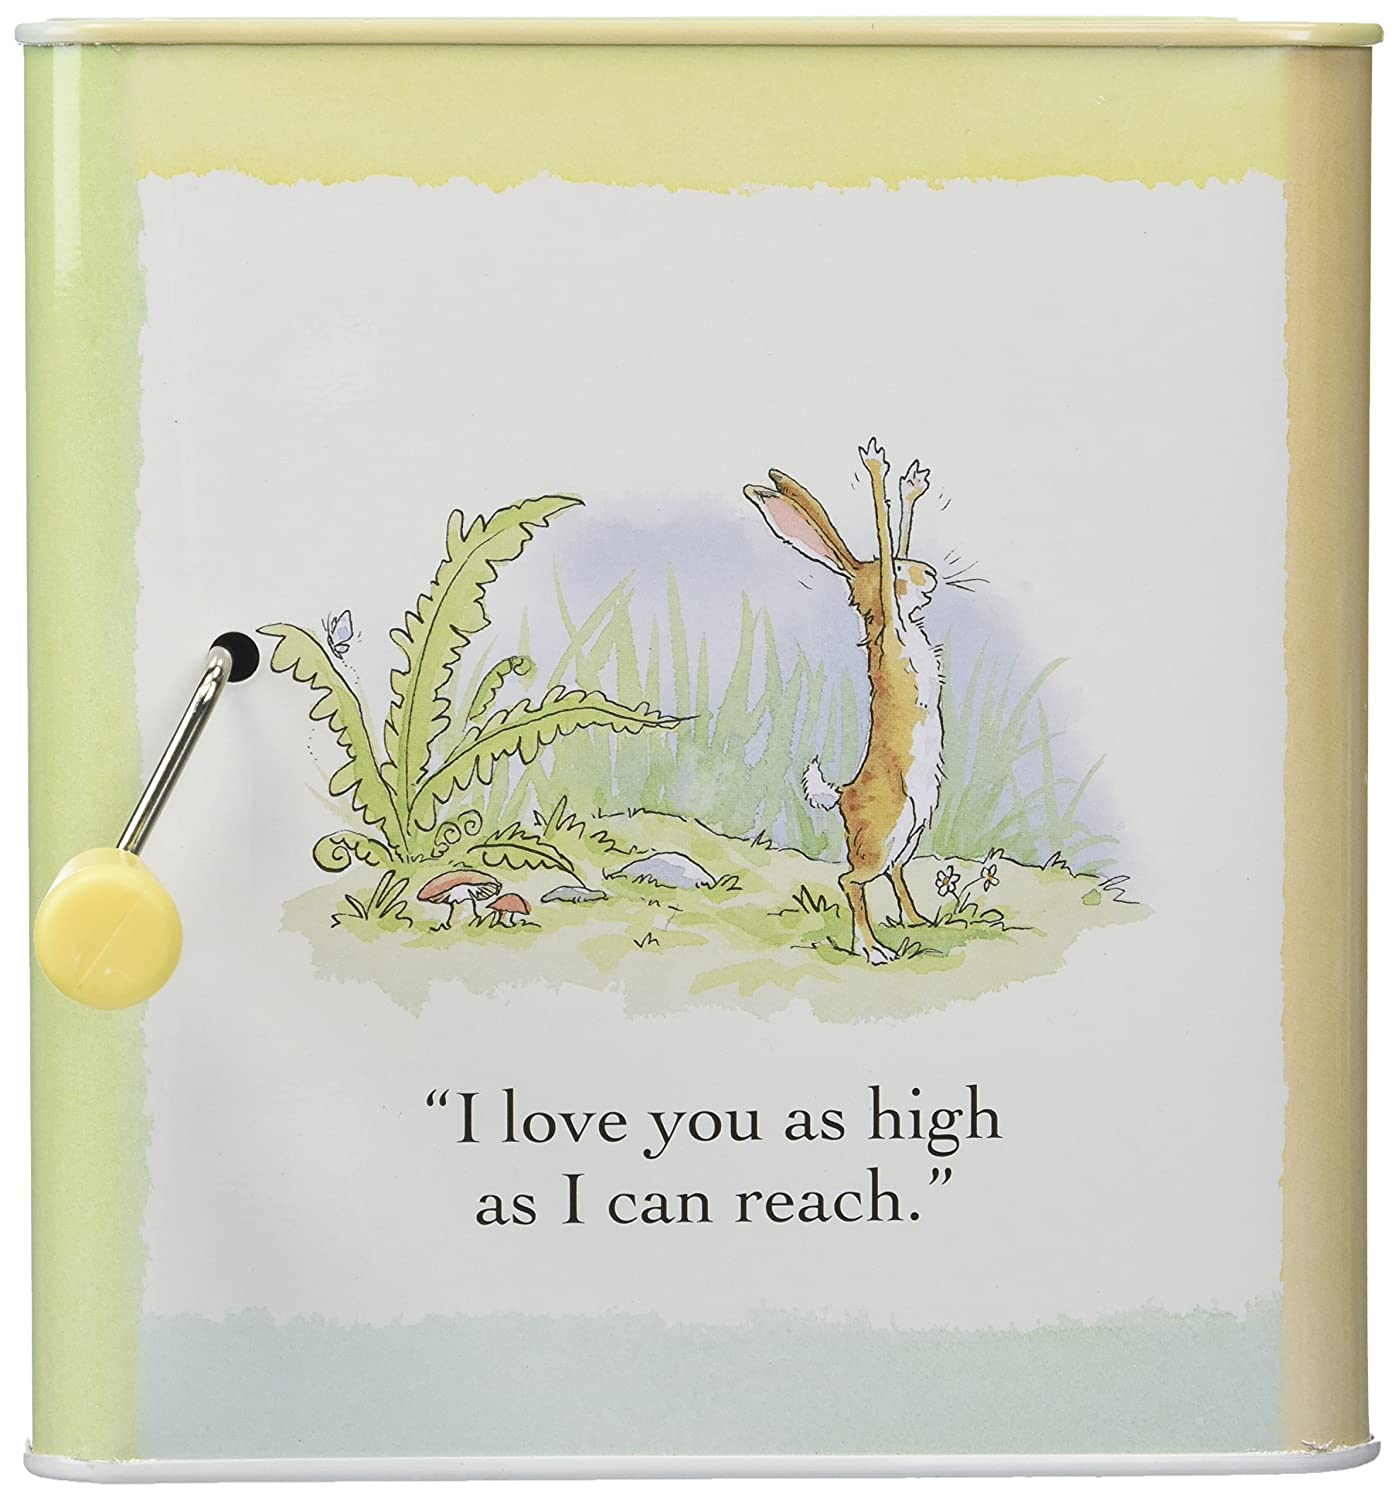 i love you as high as i can reach